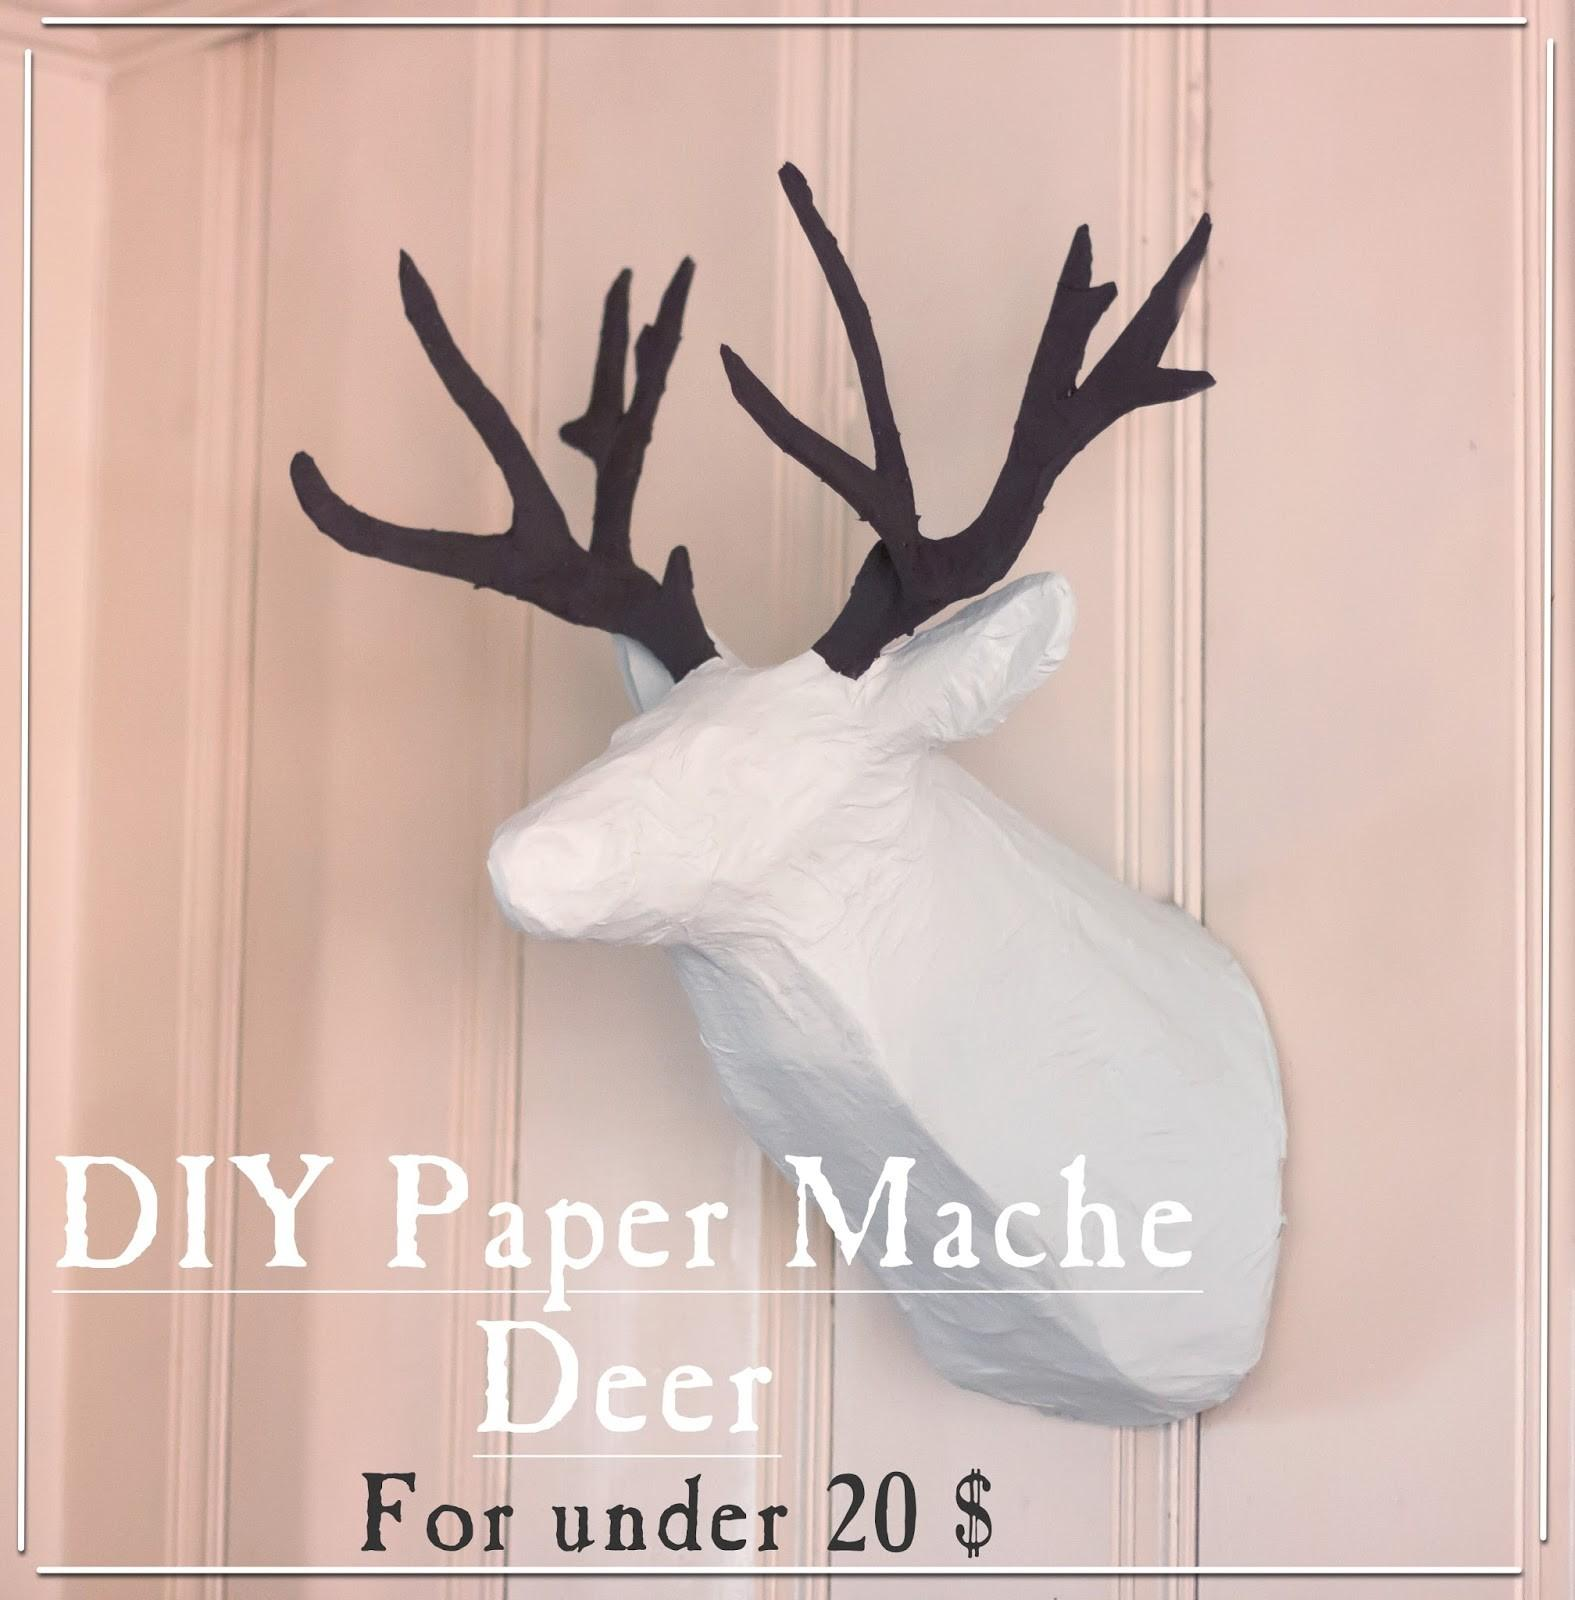 Imperfectly Imaginable Diy Paper Mache Deer Head